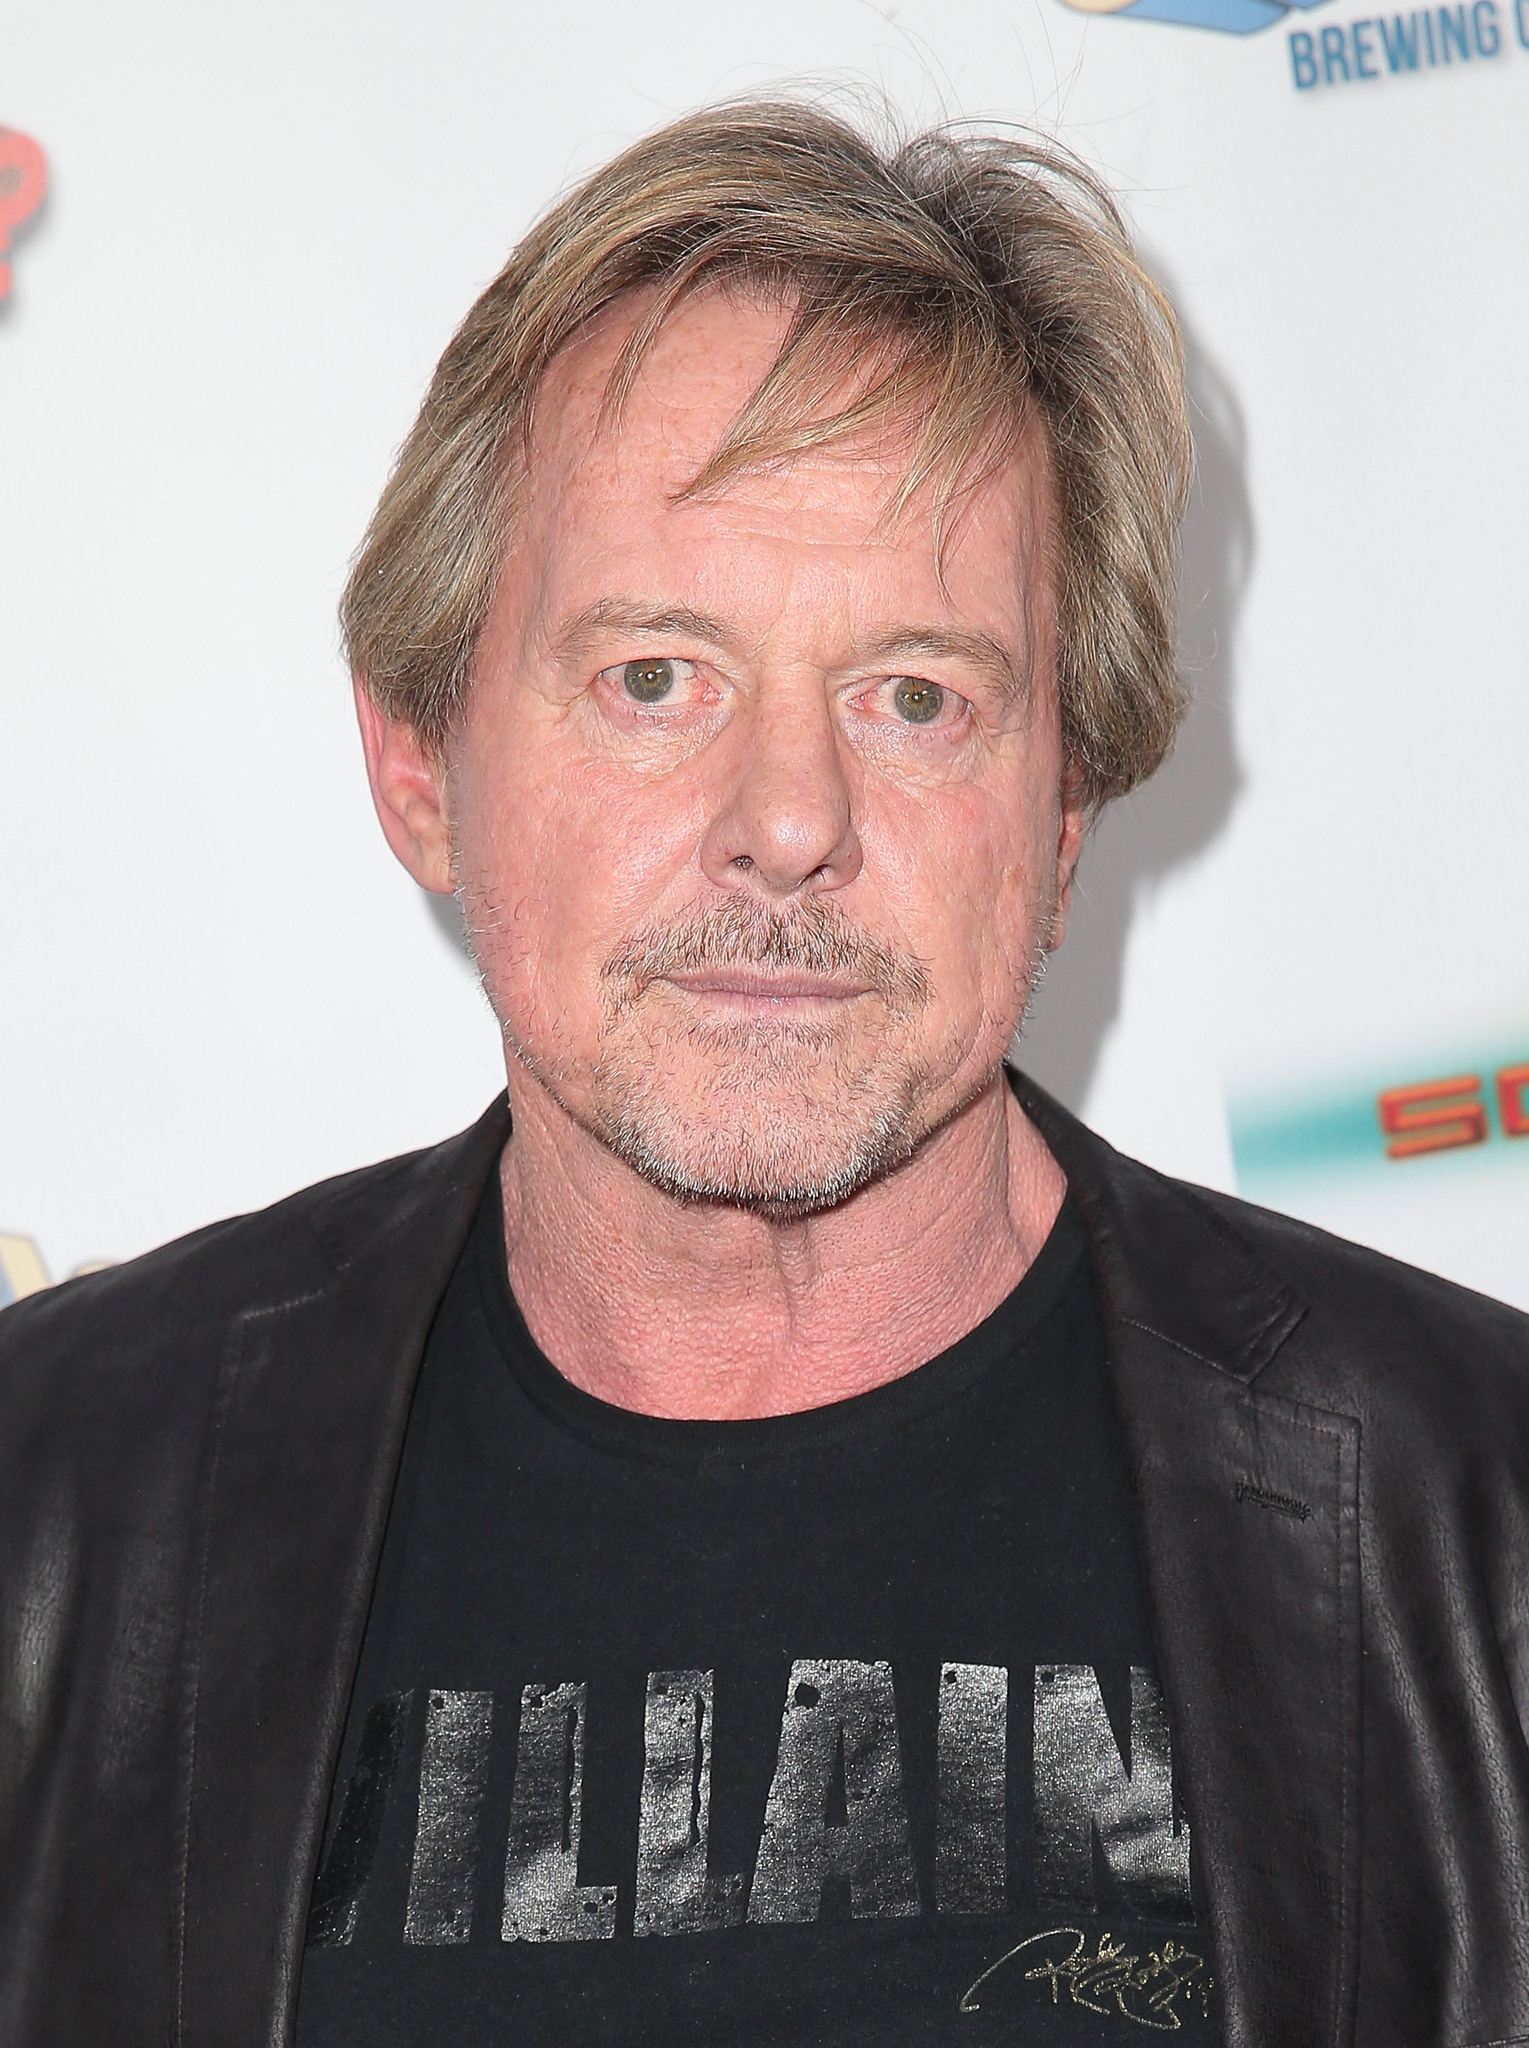 Roddy Piper Roddy Piper new foto